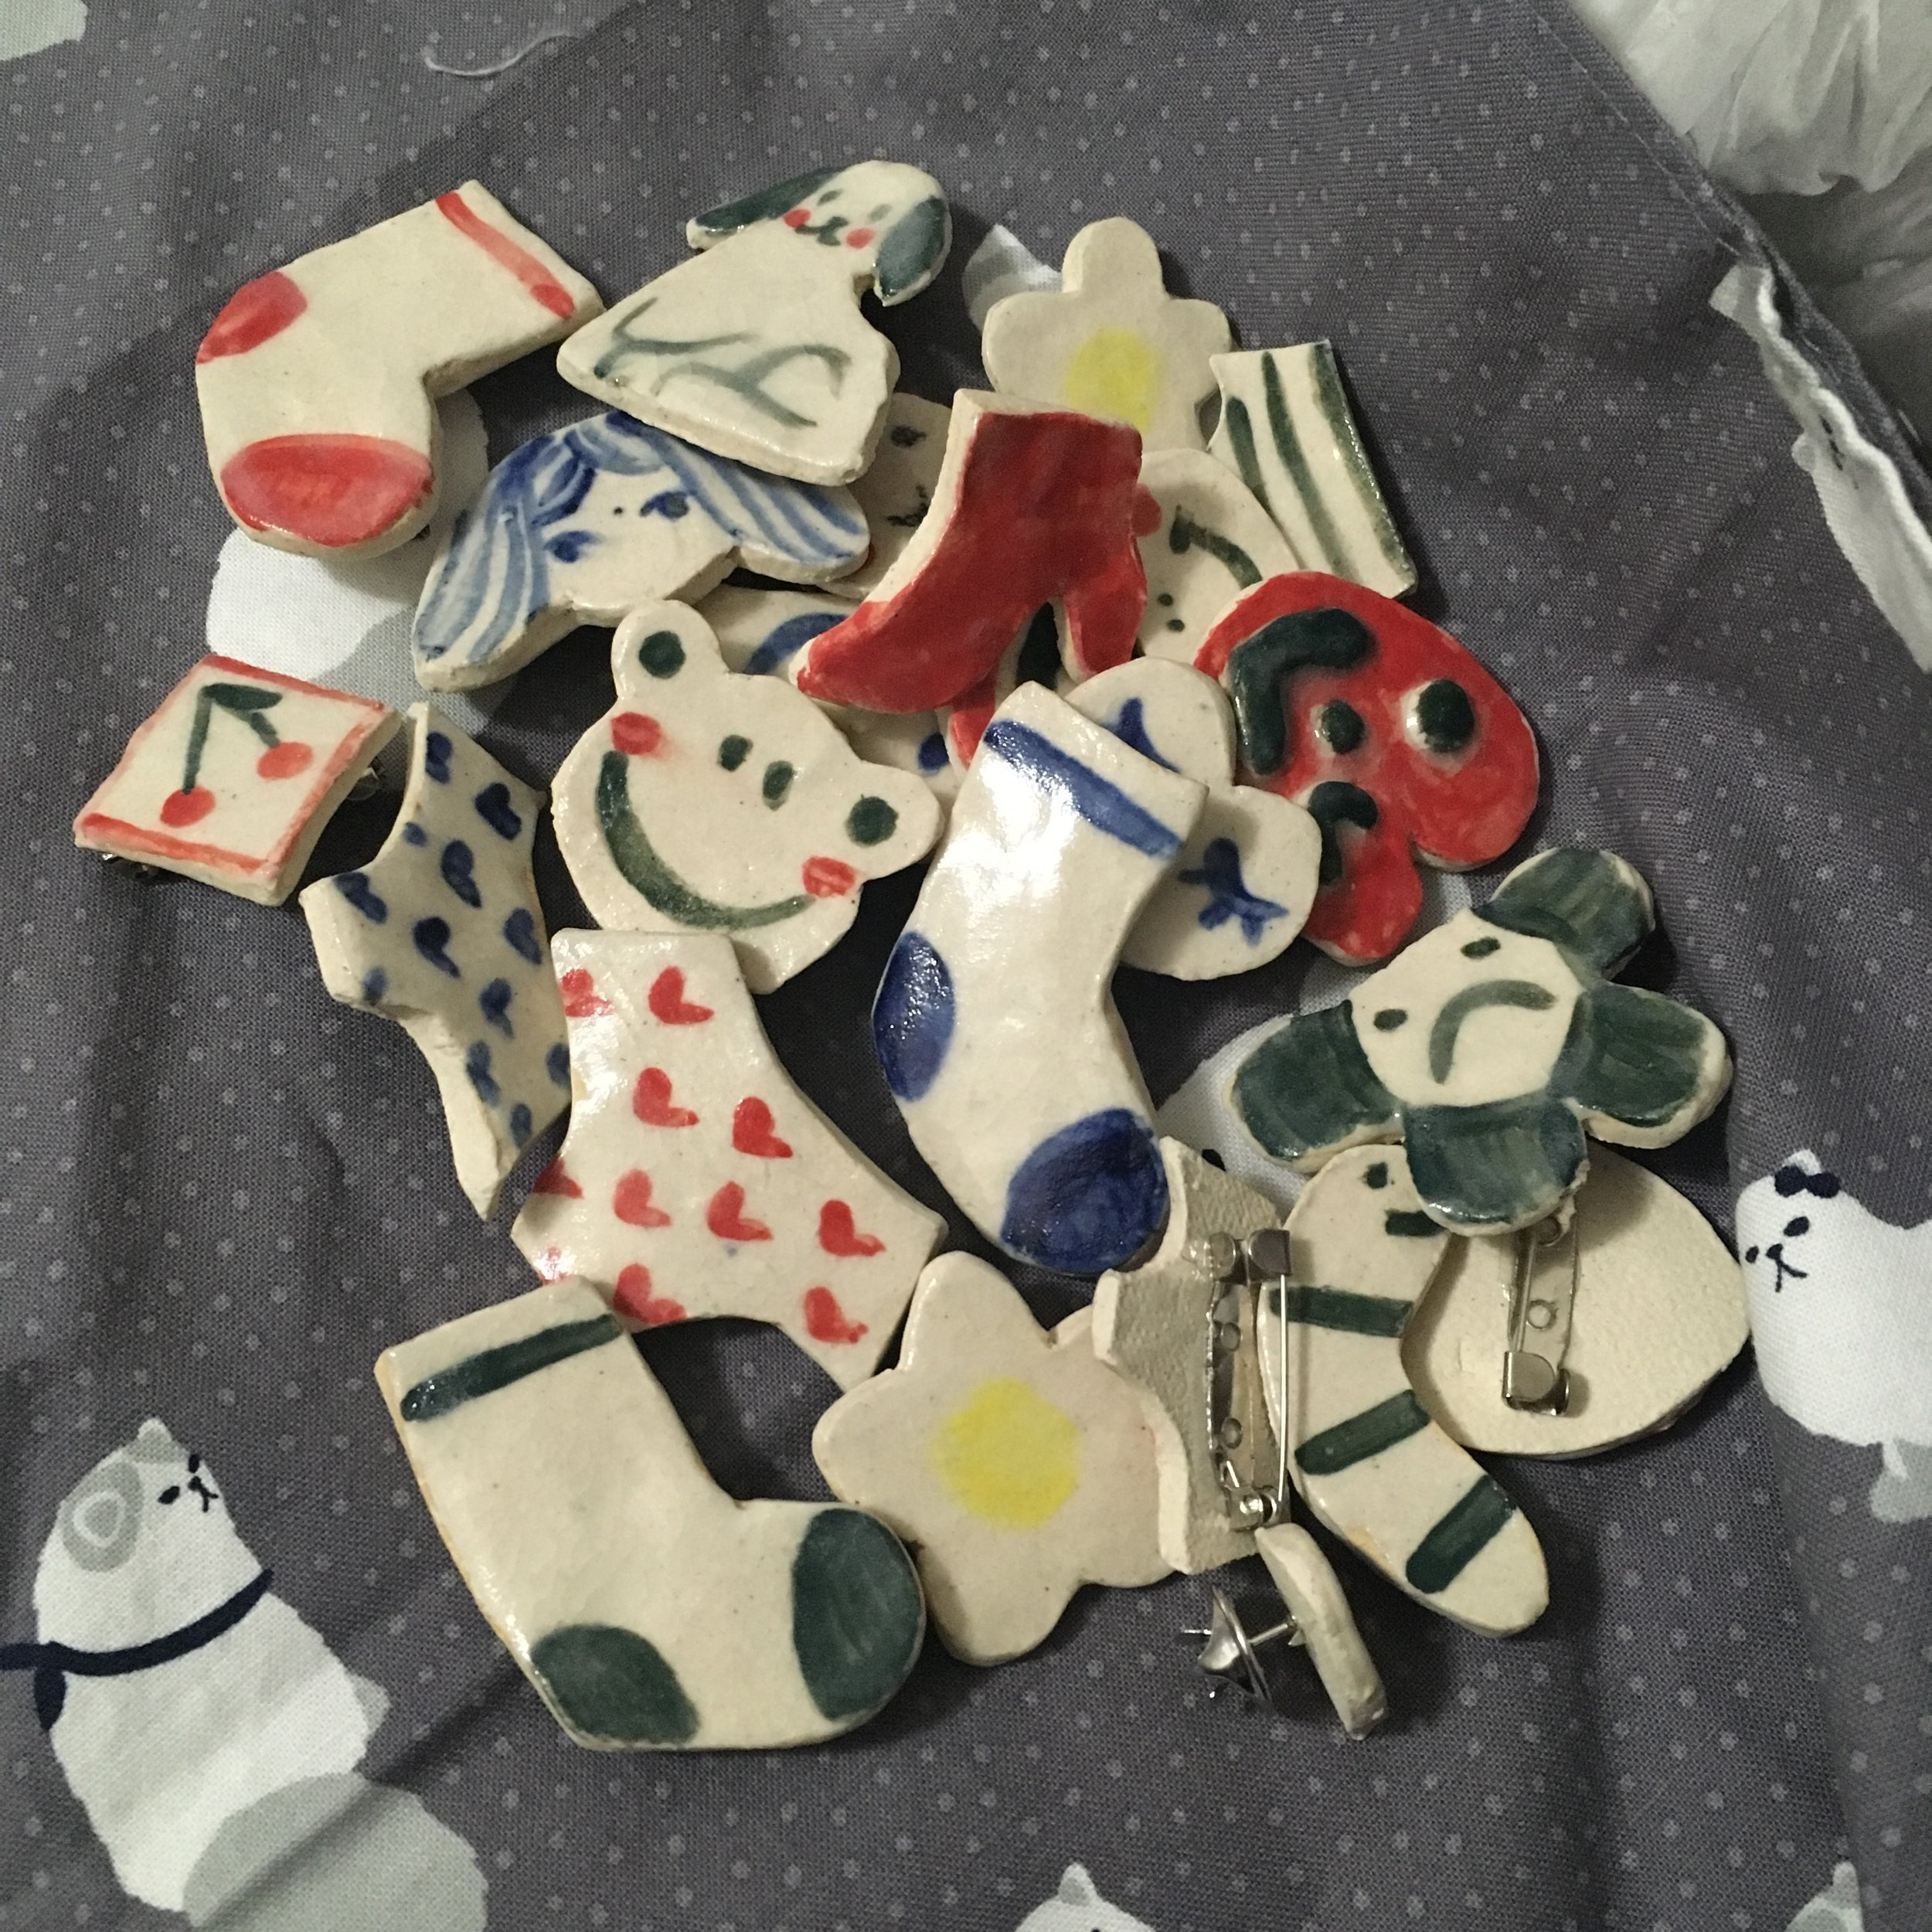 lots of ceramic pins I made that didn't make it for artist alley but did debut at xpace's holiday zine and market fair